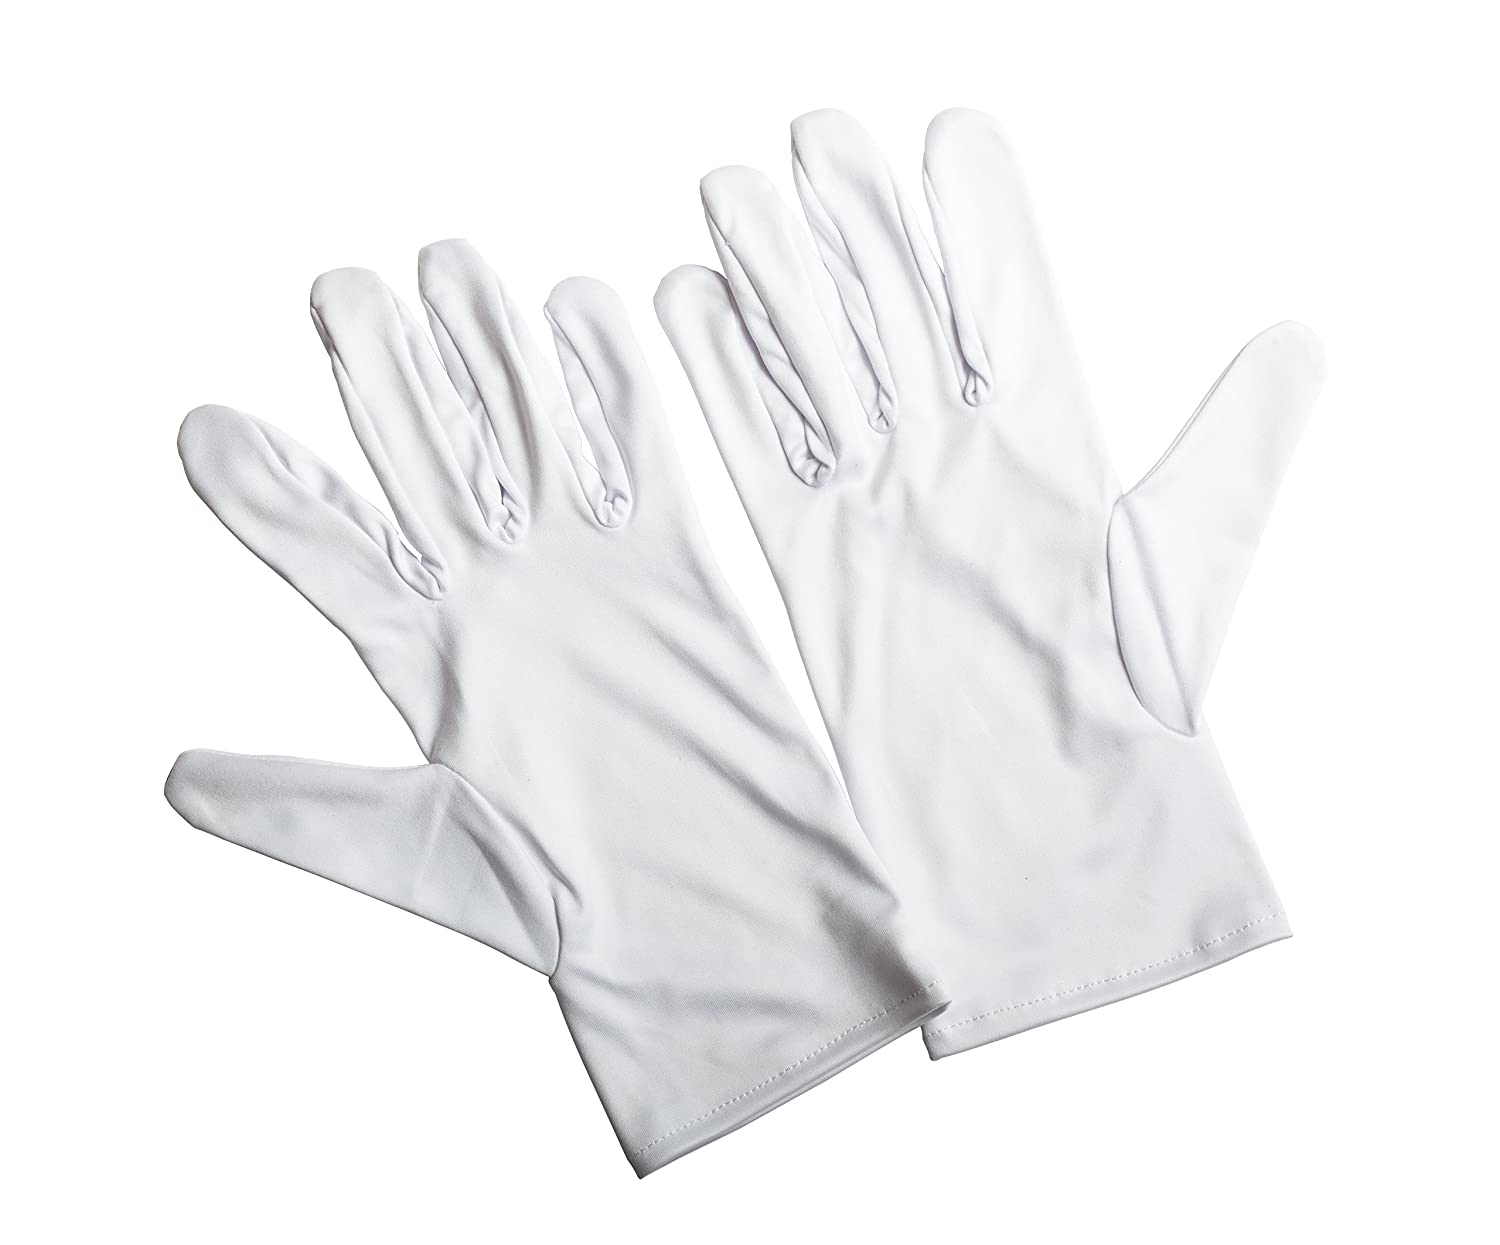 Black microfiber jewelry gloves - Amazon Com Large White Touchscreen Compatible Lint Free Microfiber Inspection Gloves Office Products